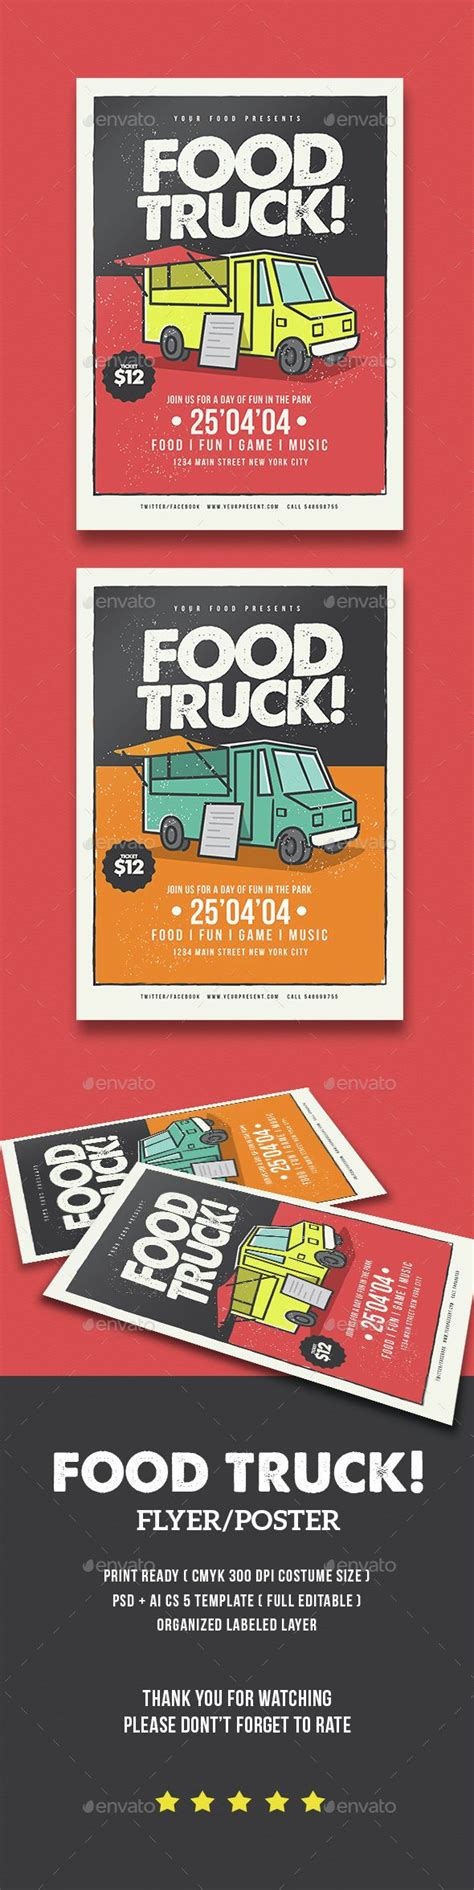 51 Best Images About Food Truck Festivals Street Fairs On Pinterest Food Truck Events Food Focus Flyer Template